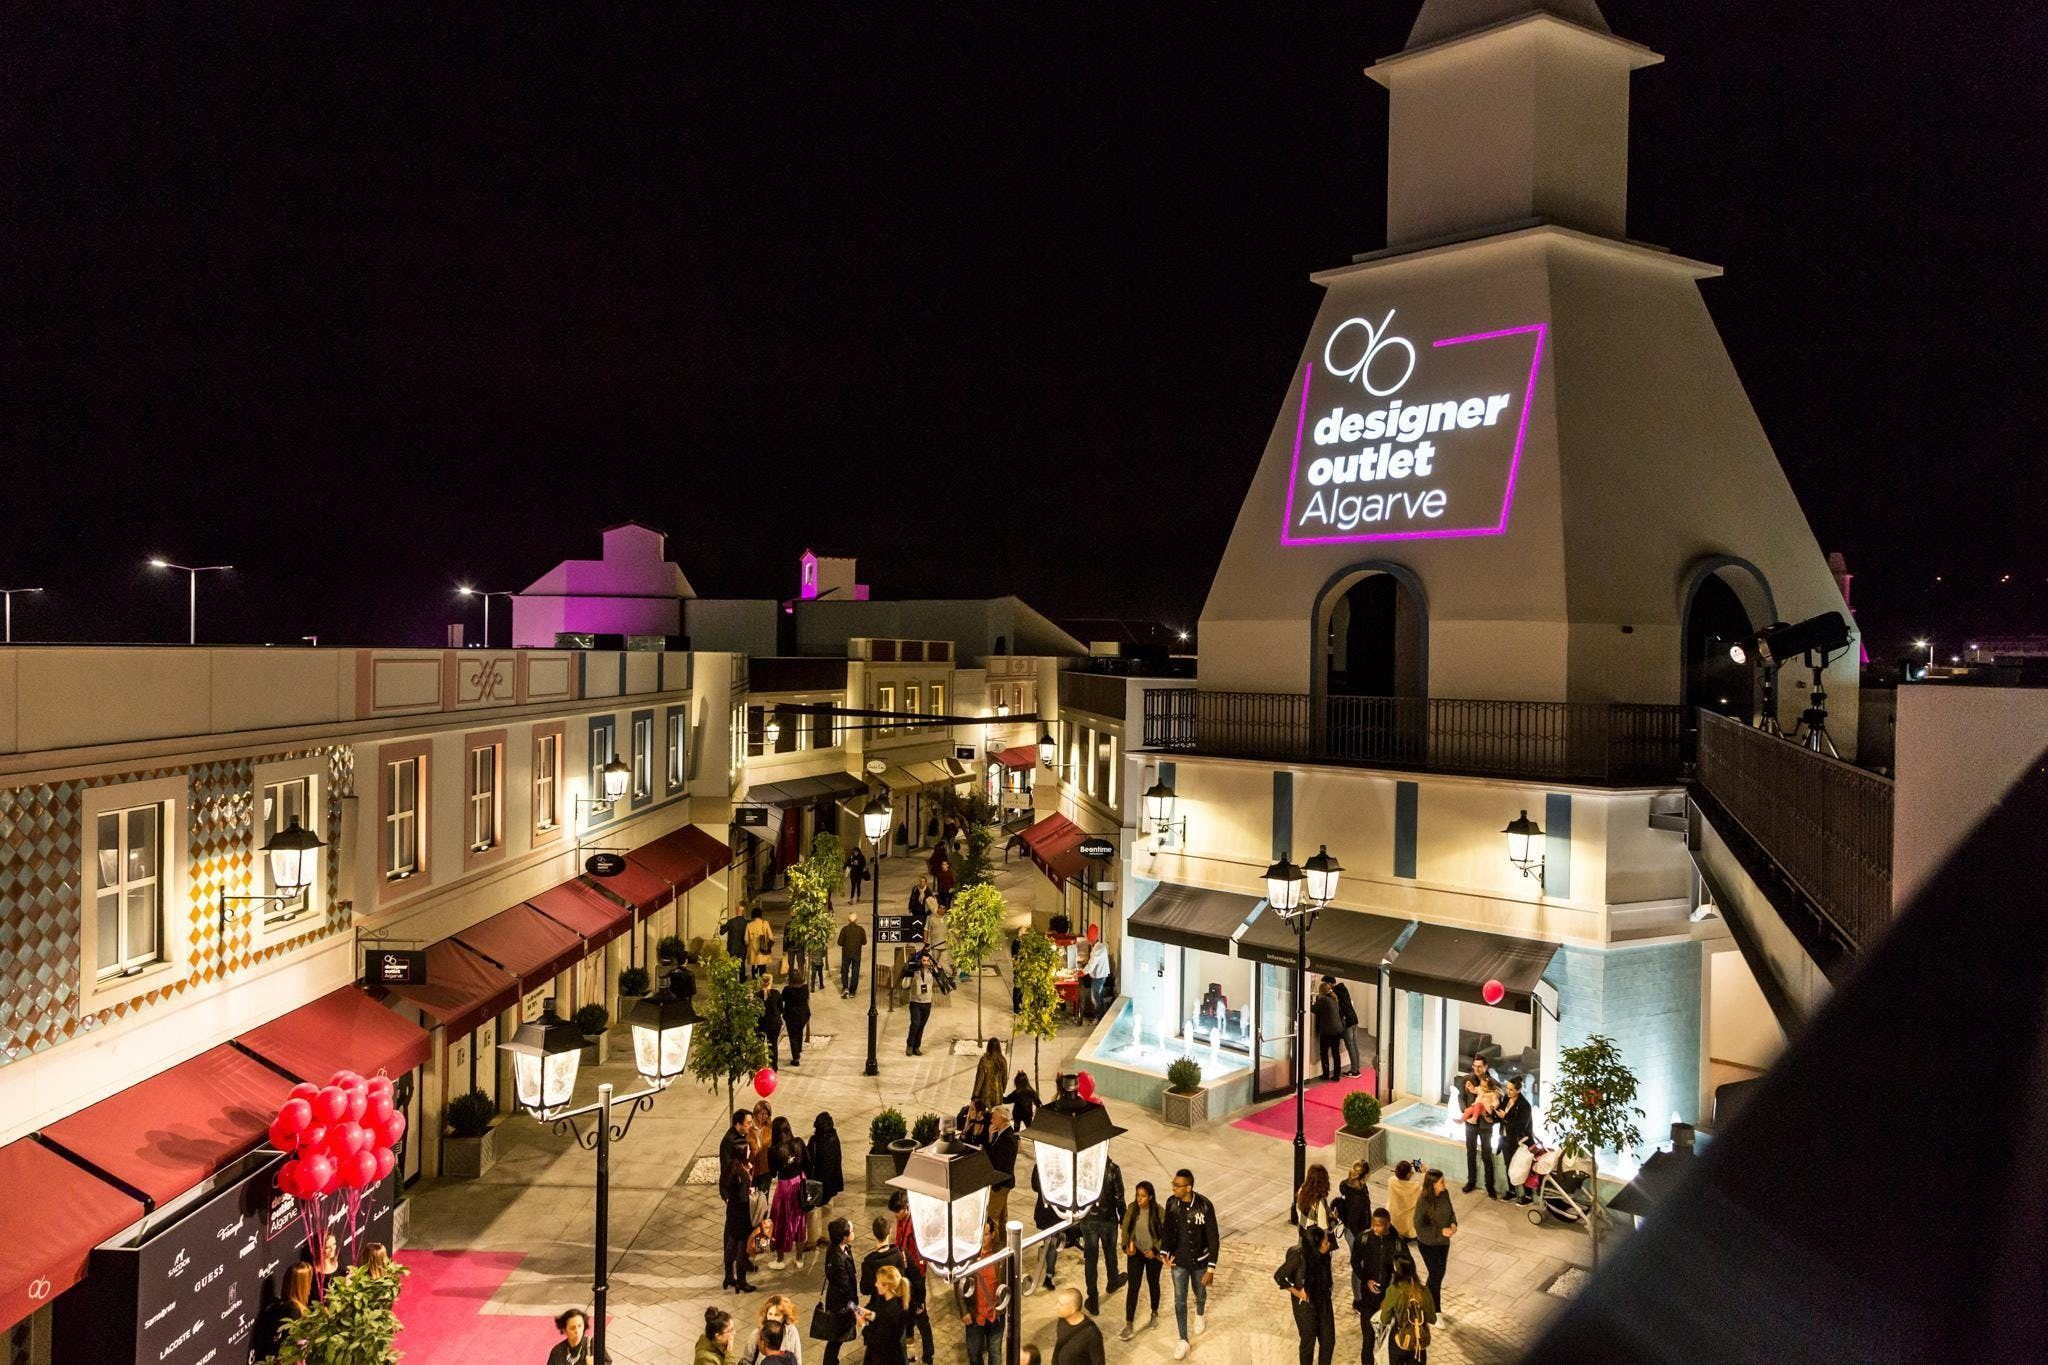 Mar shopping and designer outlet algarve on tourmega for Outlet del design